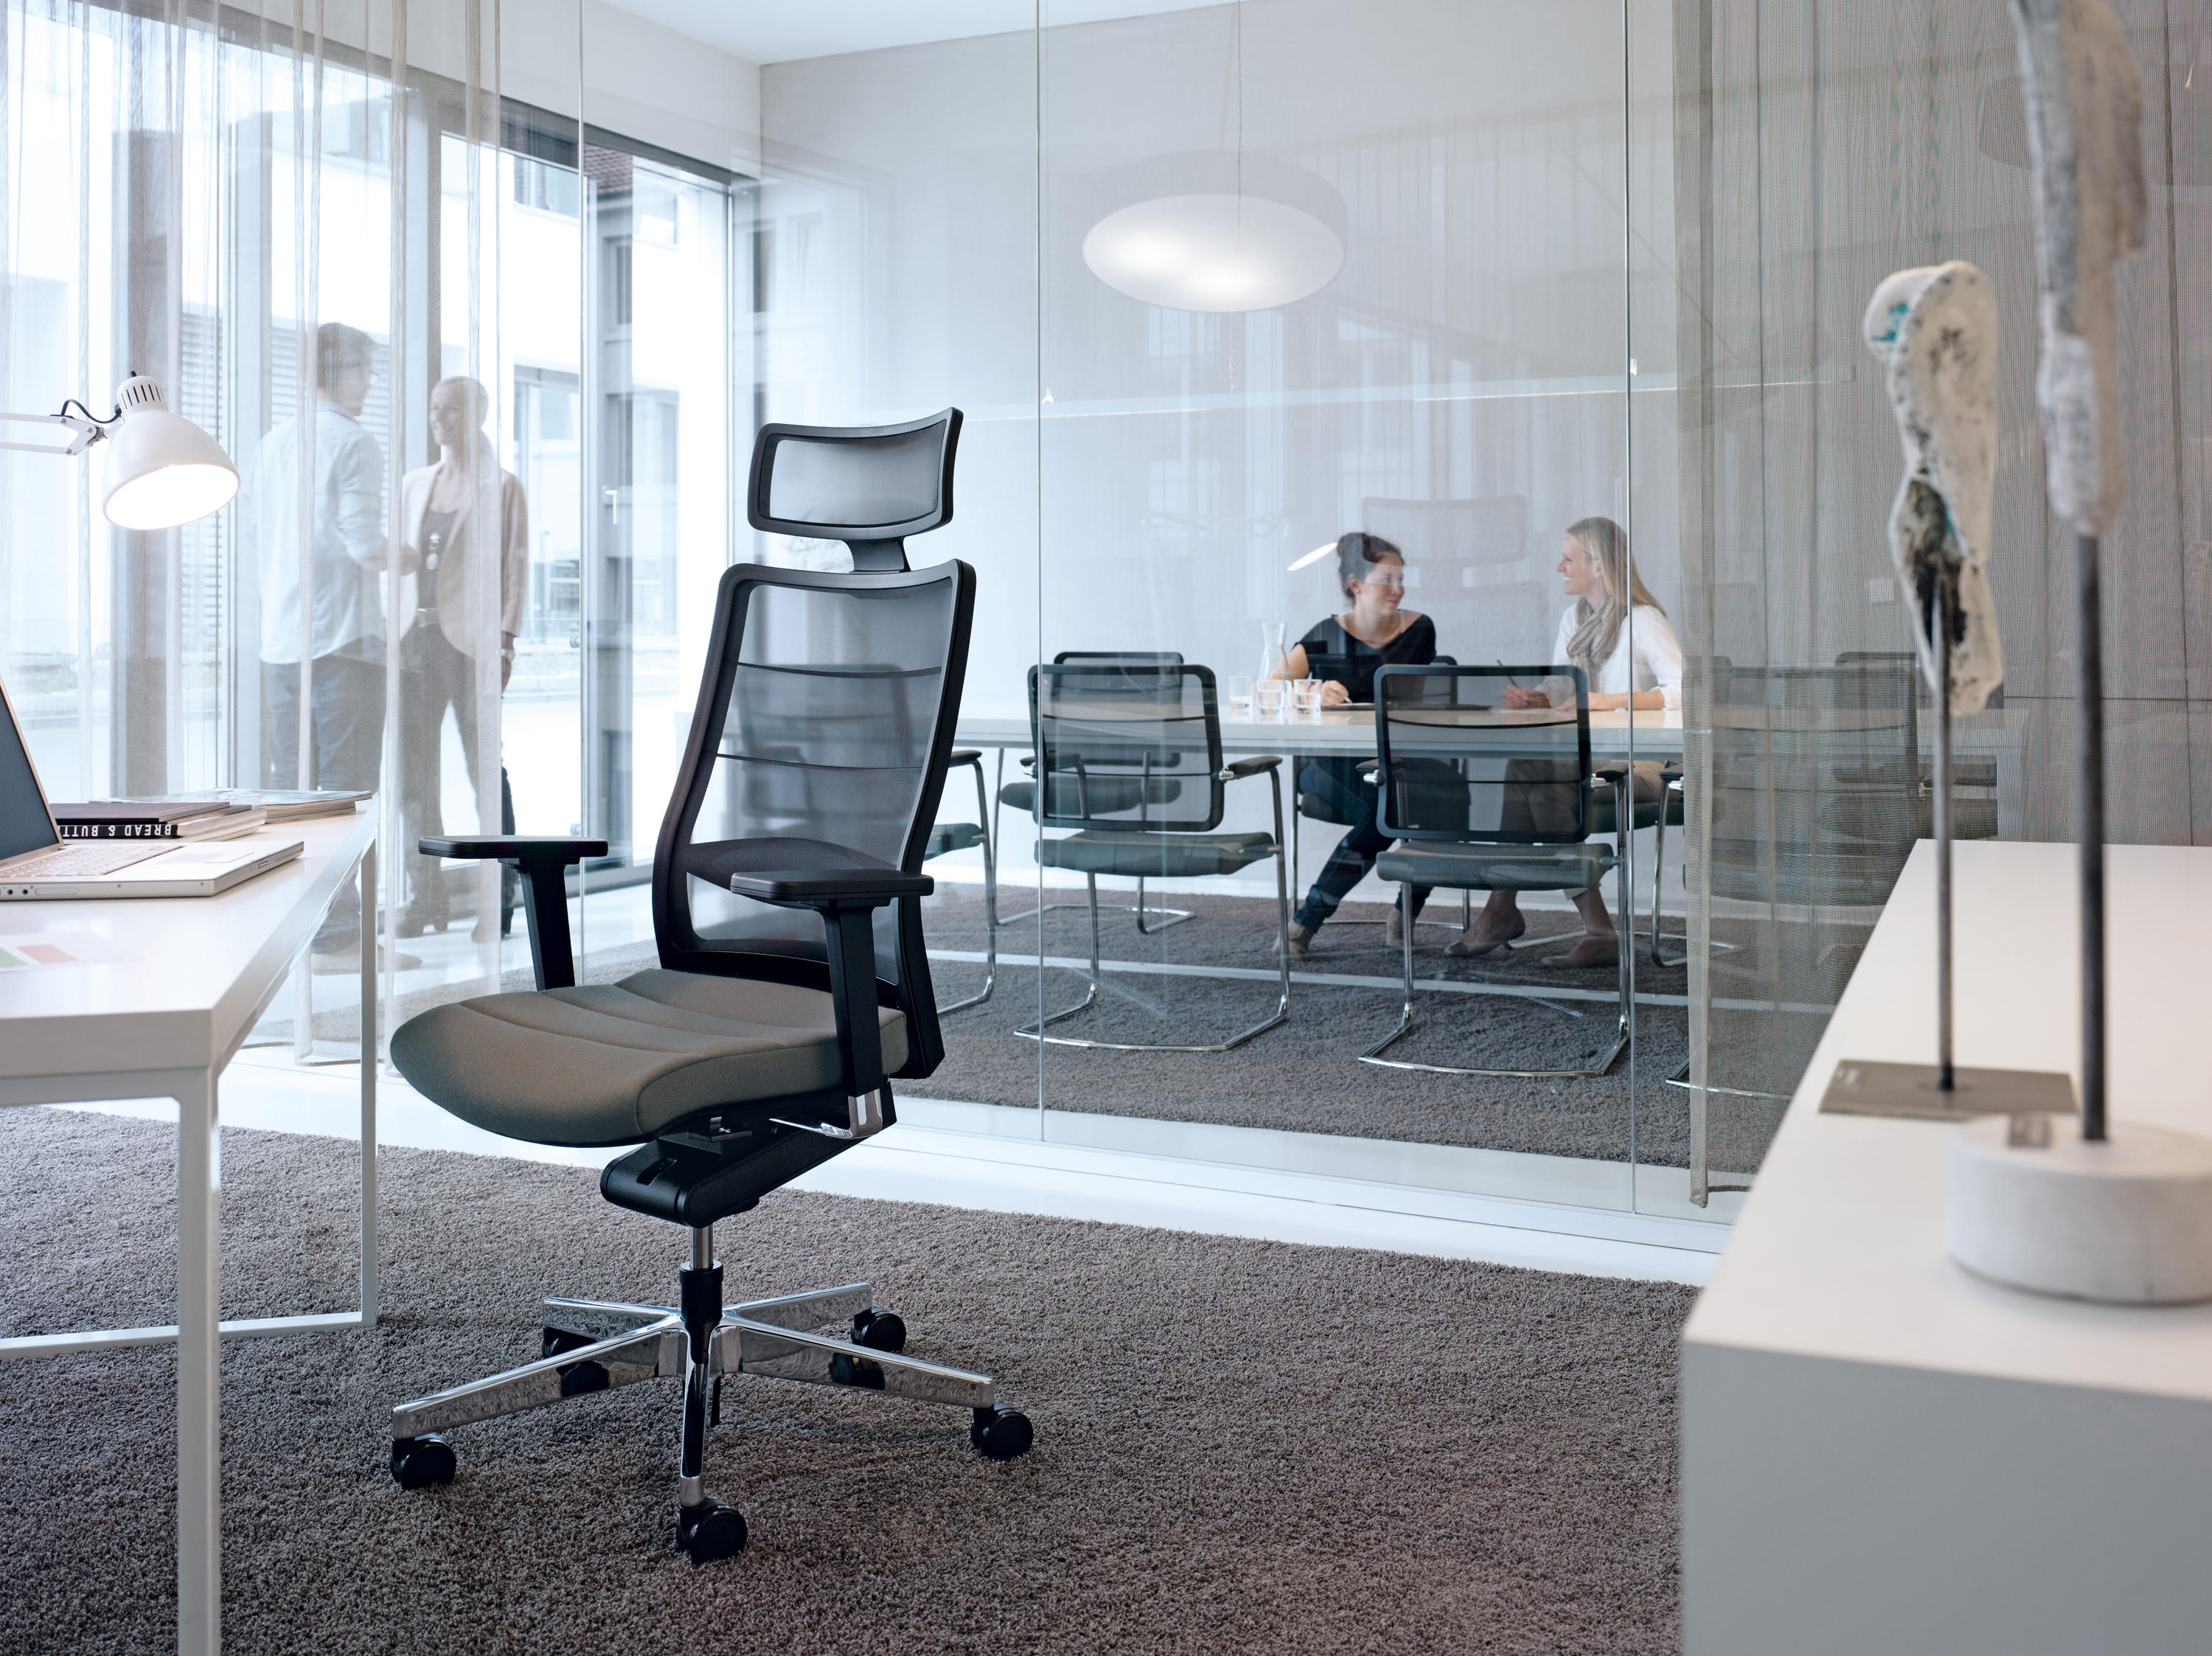 AIRPAD 3C42 - Task chairs from Interstuhl Büromöbel GmbH & Co. KG ...